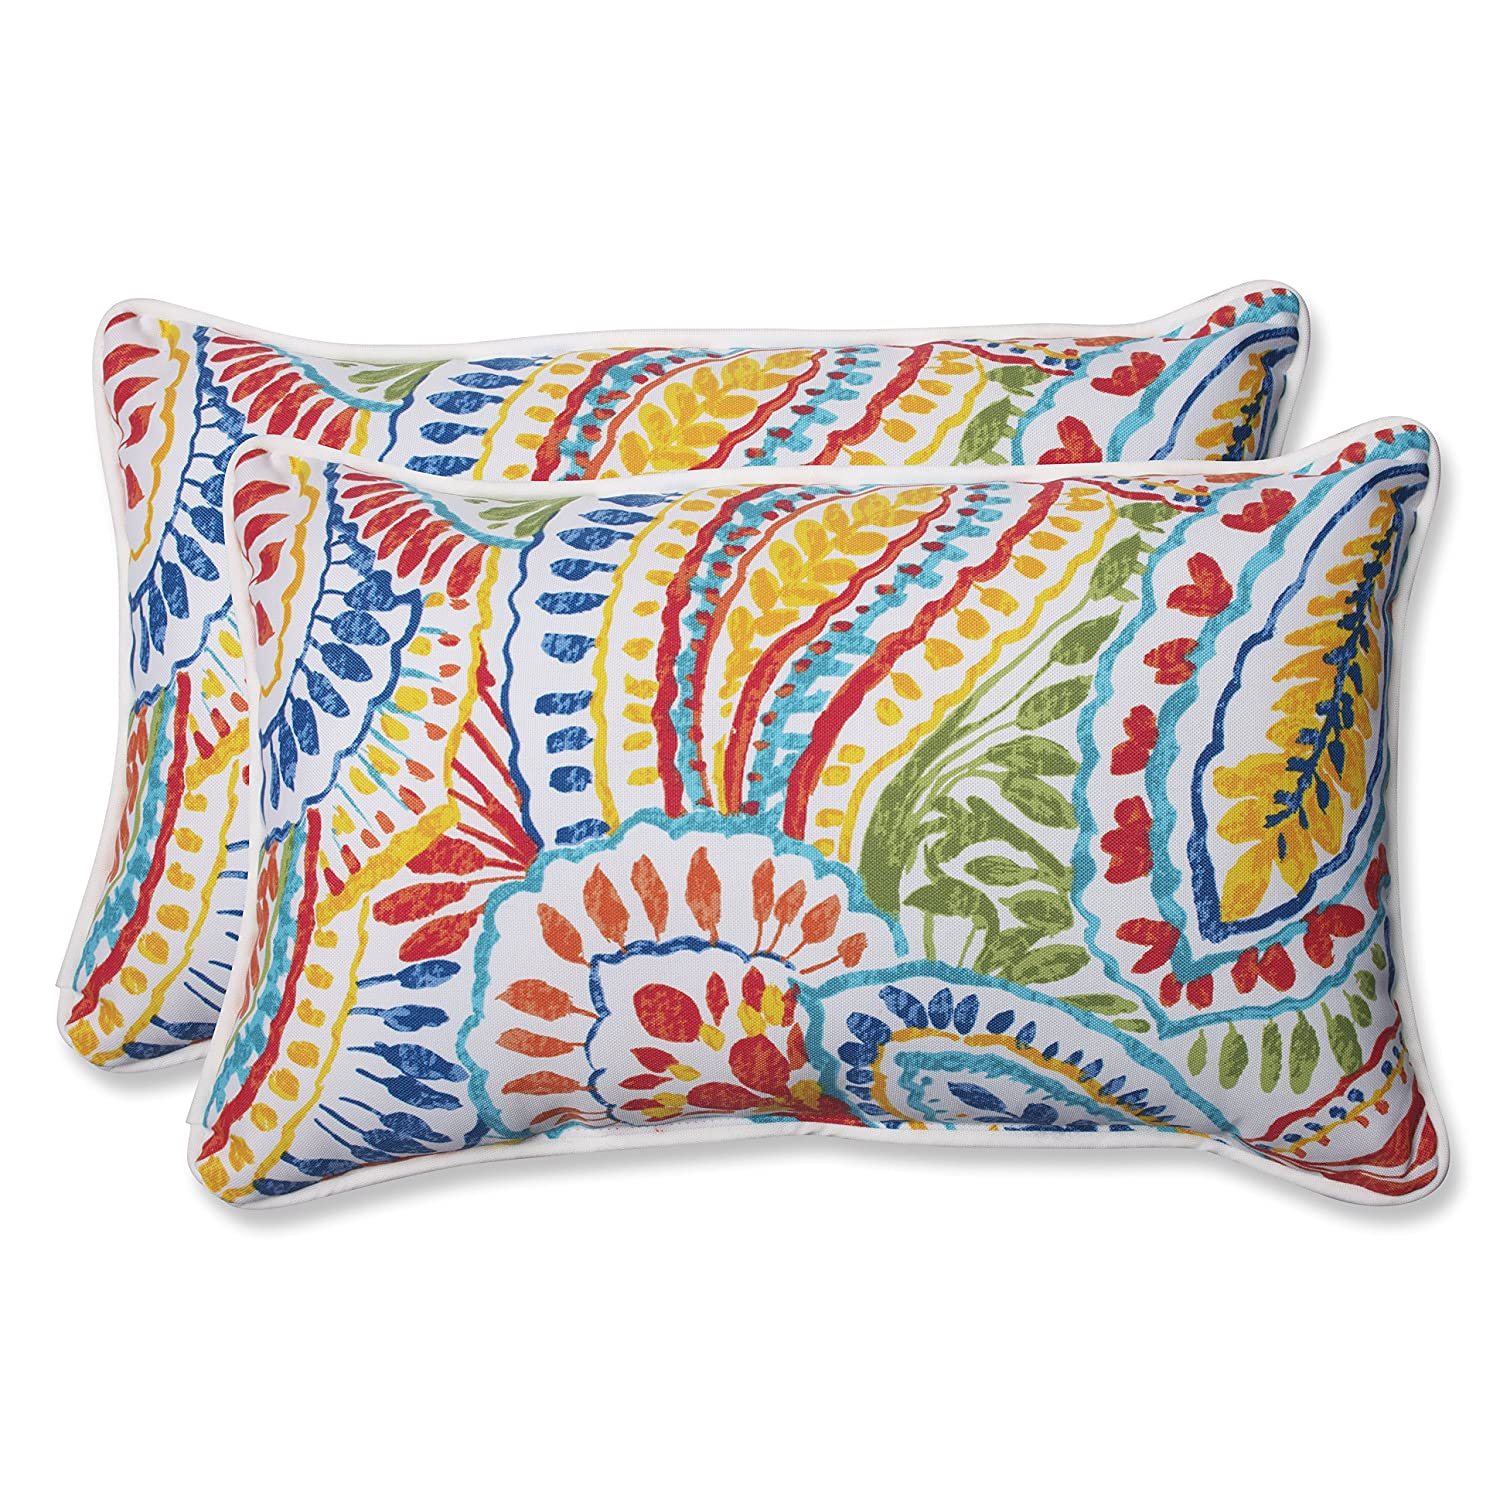 Pillow Perfect 572581 Outdoor Ummi Rectangular Throw Pillow Set of 2 Multicolored